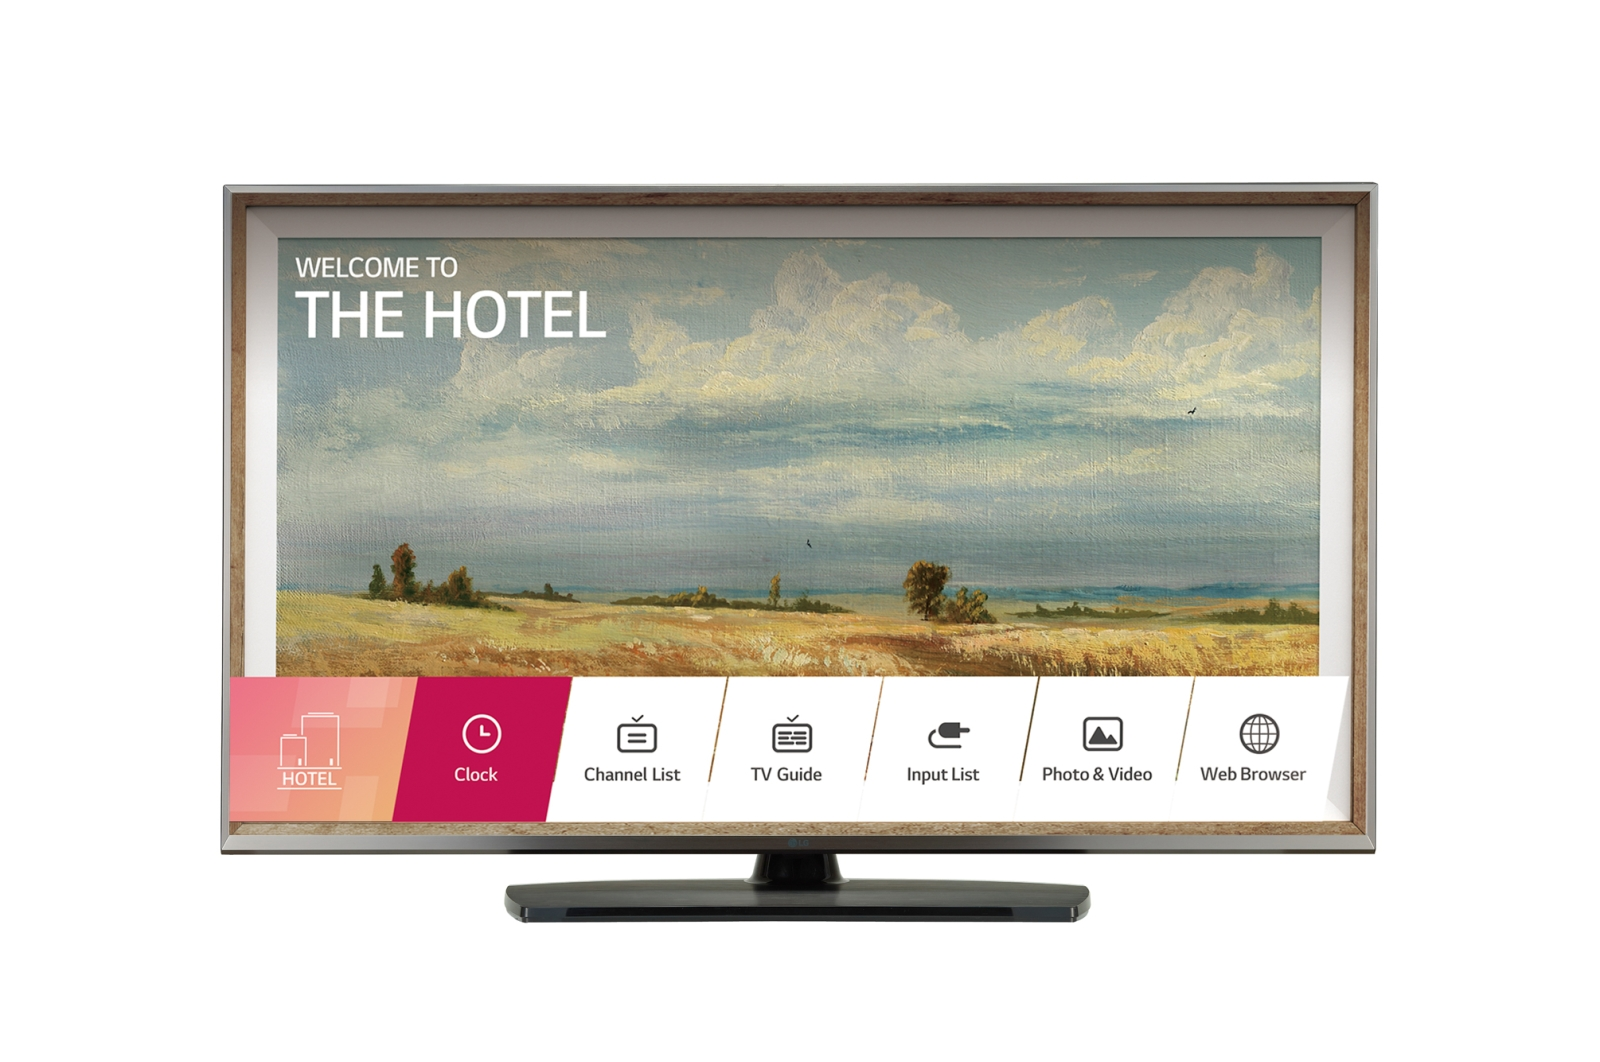 Televisions & Recorders LG55UU761H 55in 4K Smart Hotel TV